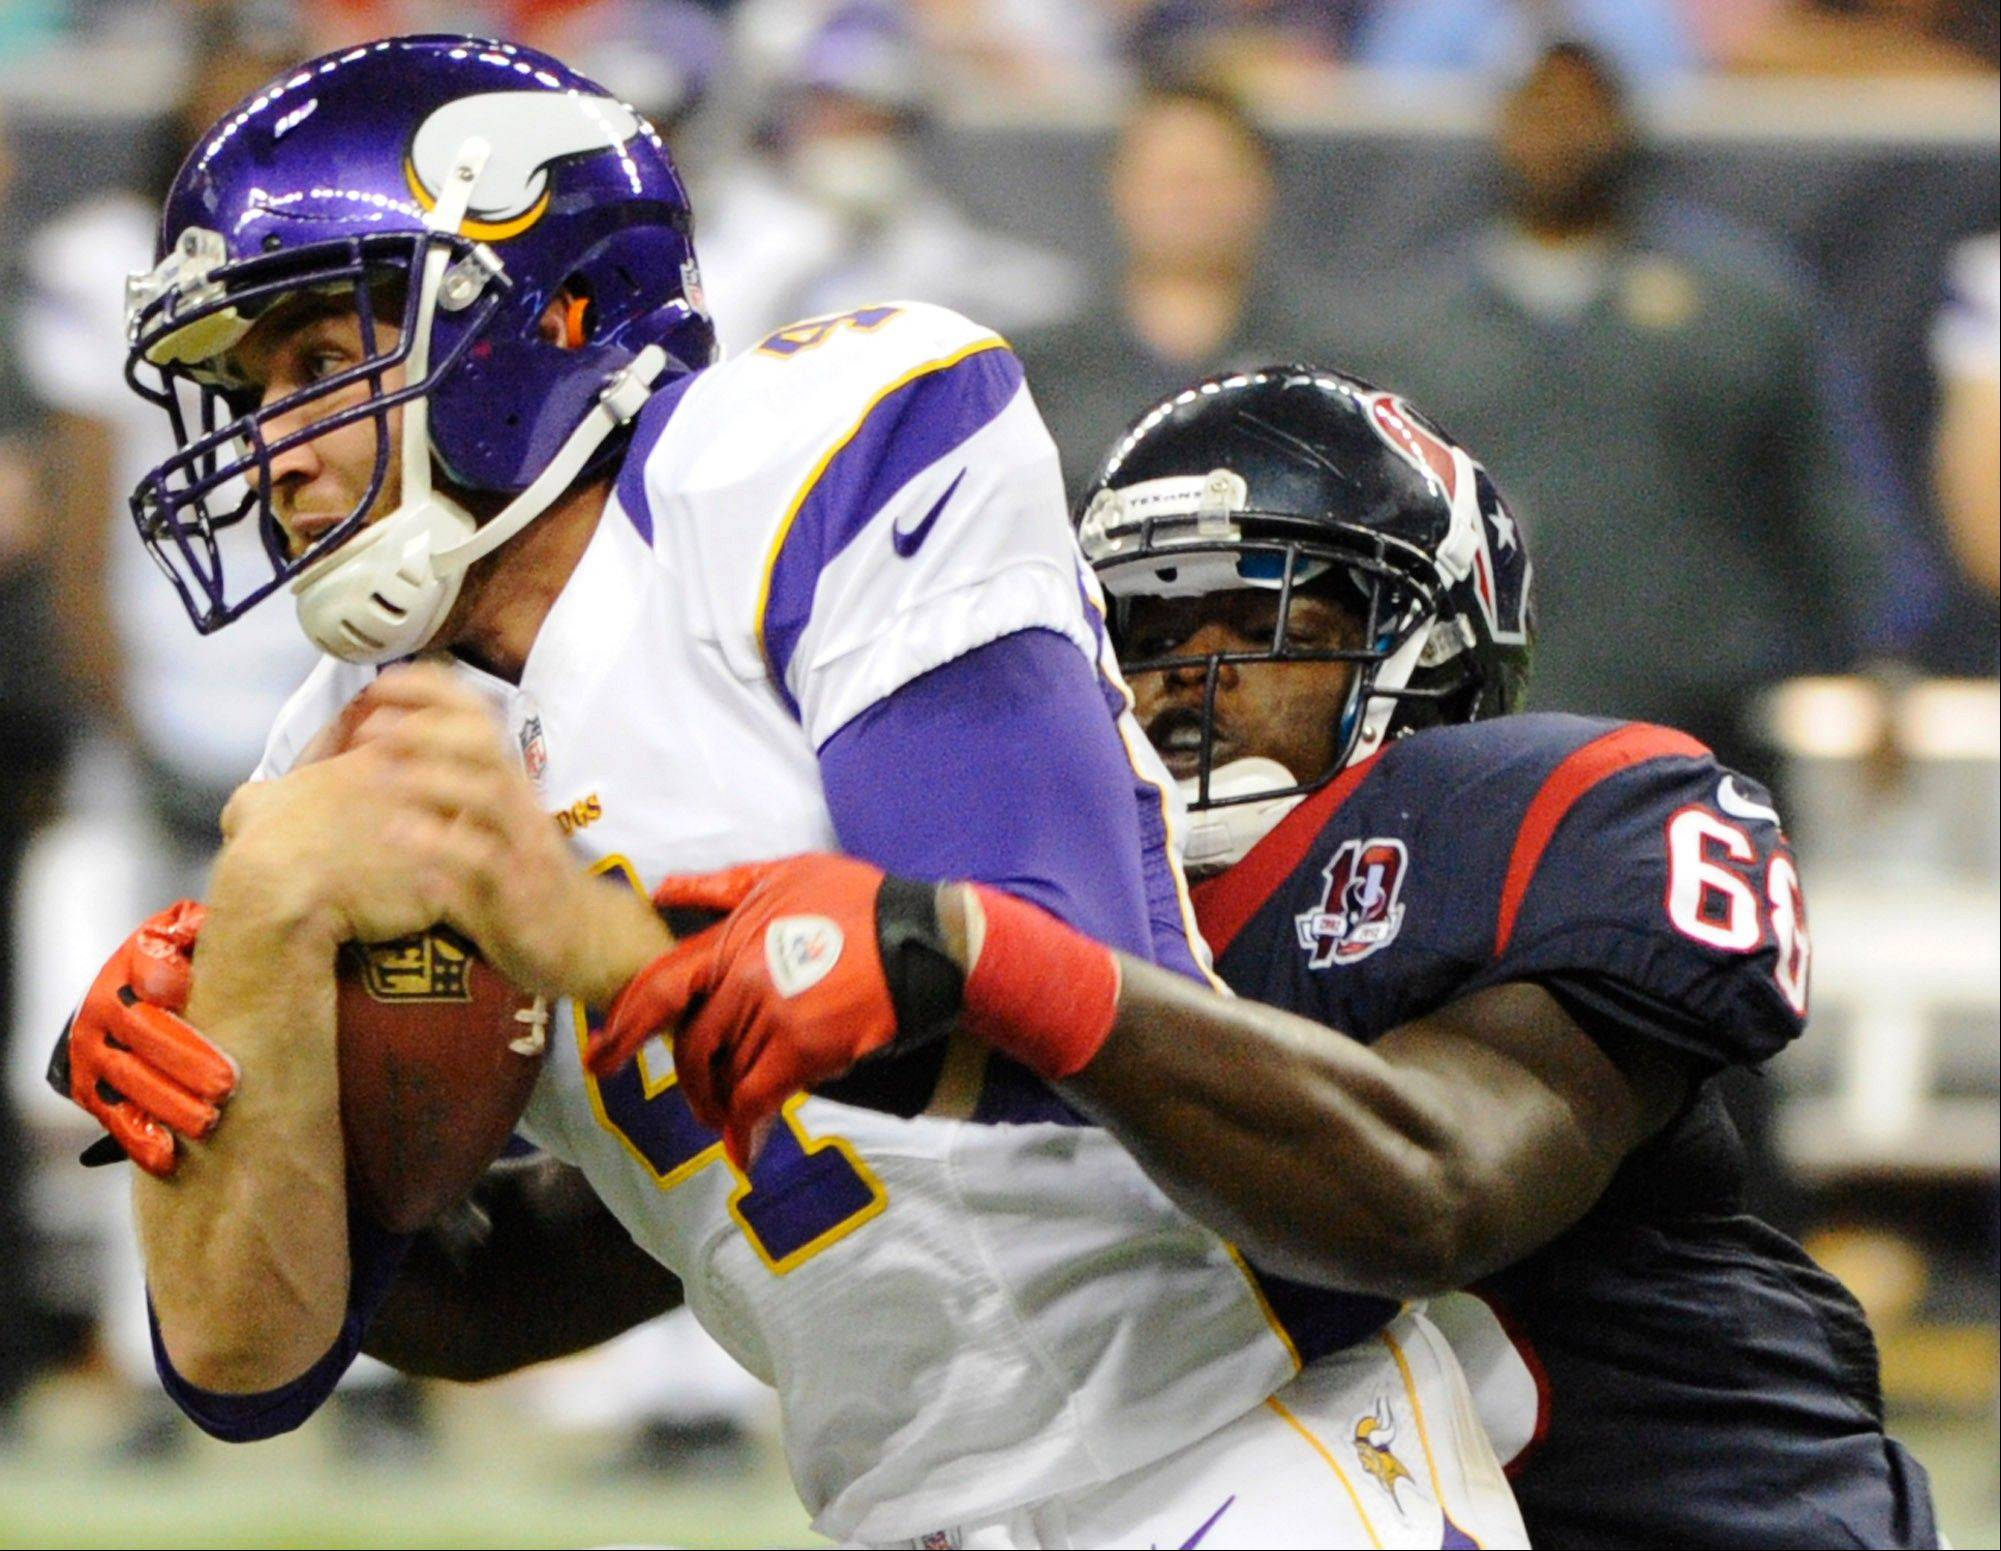 Houston Texans defensive tackle Rennie Moore wraps up Minnesota Vikings quarterback McLeod Bethel-Thompson during the second half of Thursday�s preseason game in Houston.